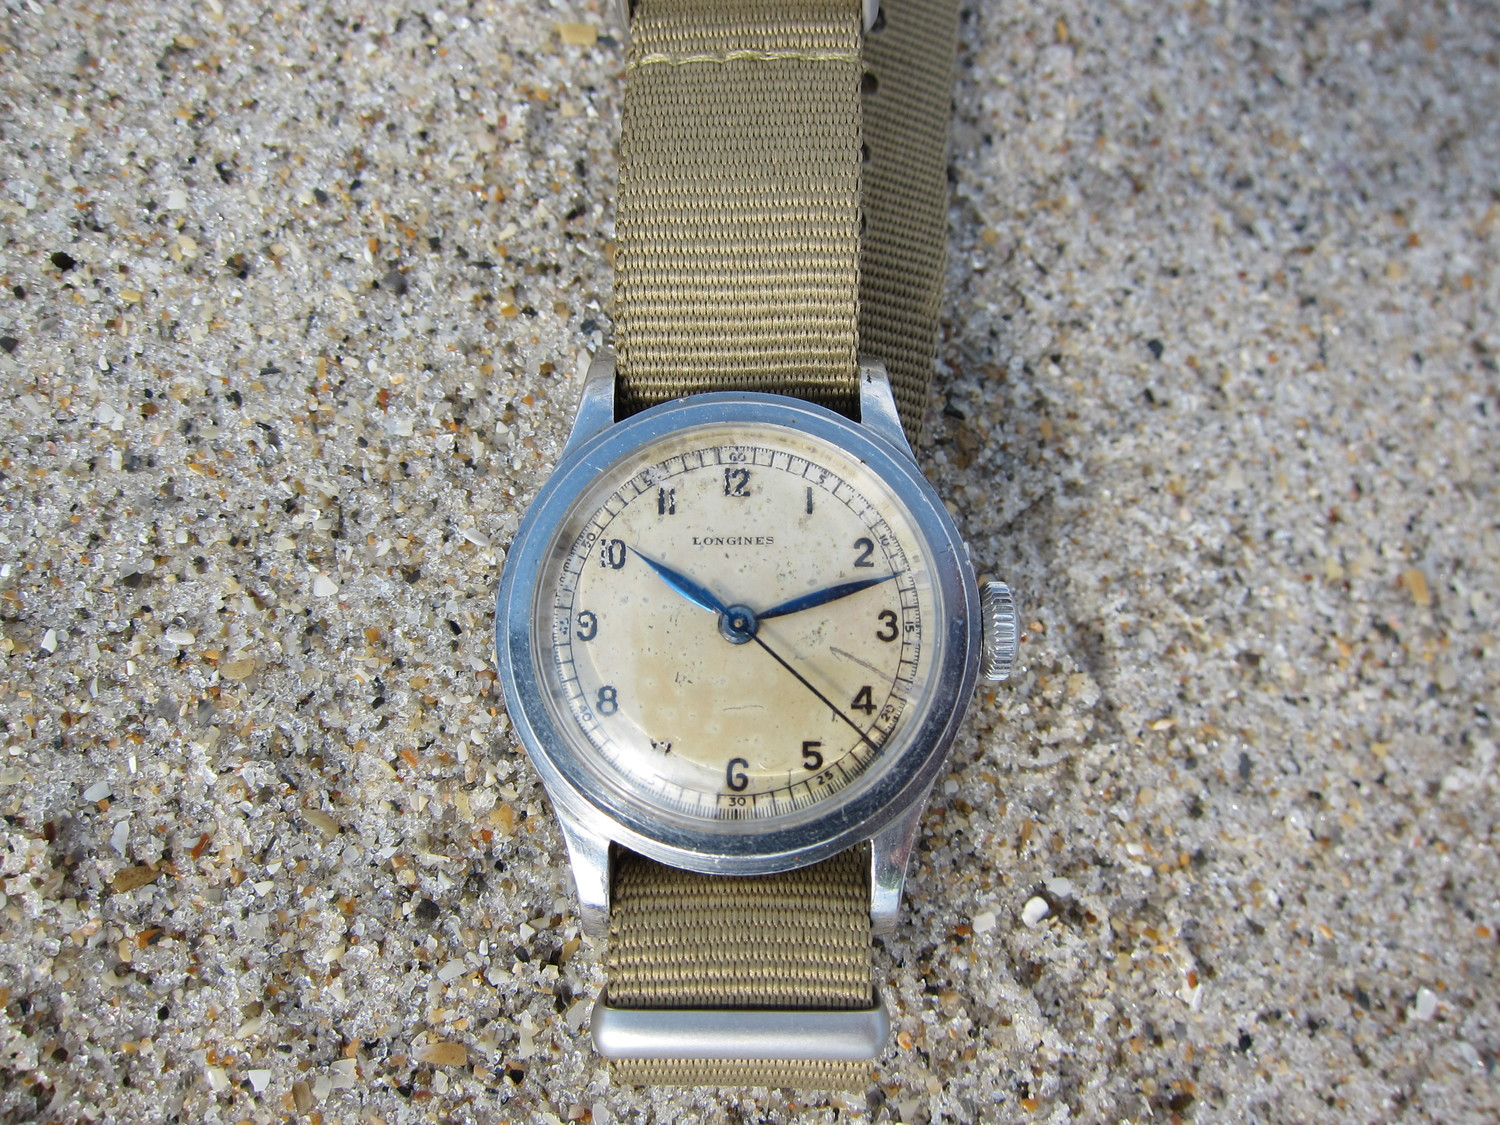 It is a solid watch with definite wear on the dial, but great charisma.